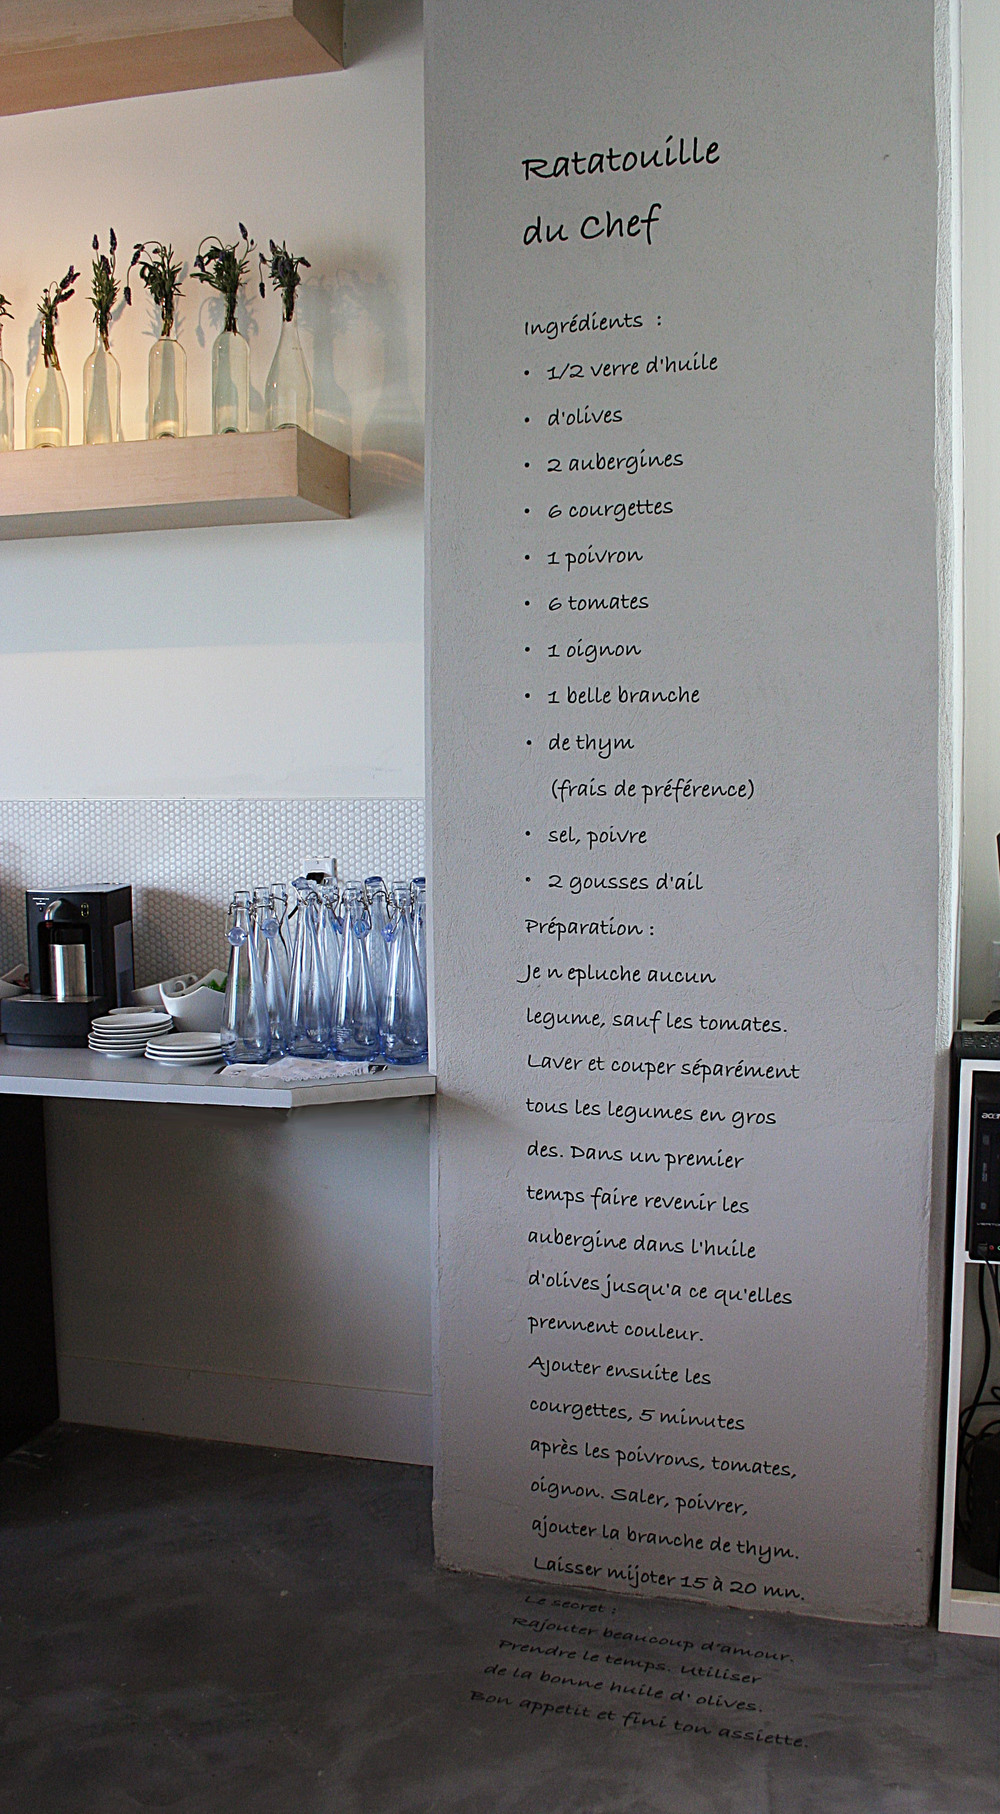 Wall decal of recipe